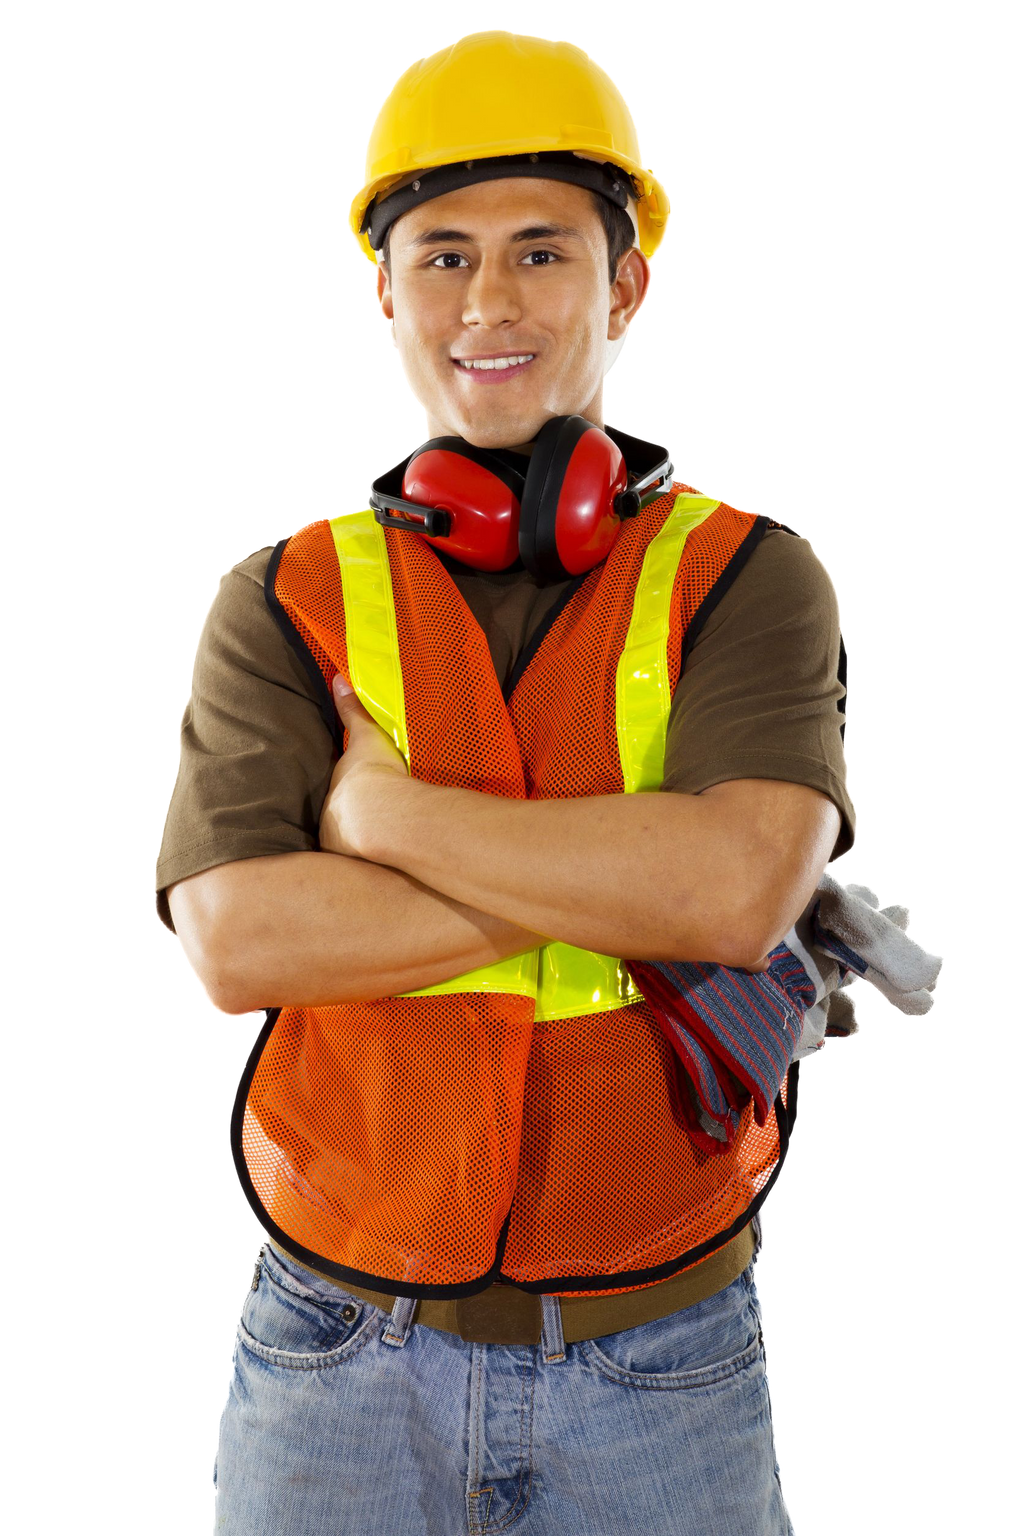 Construction Worker Wallpaper Construction Worker by